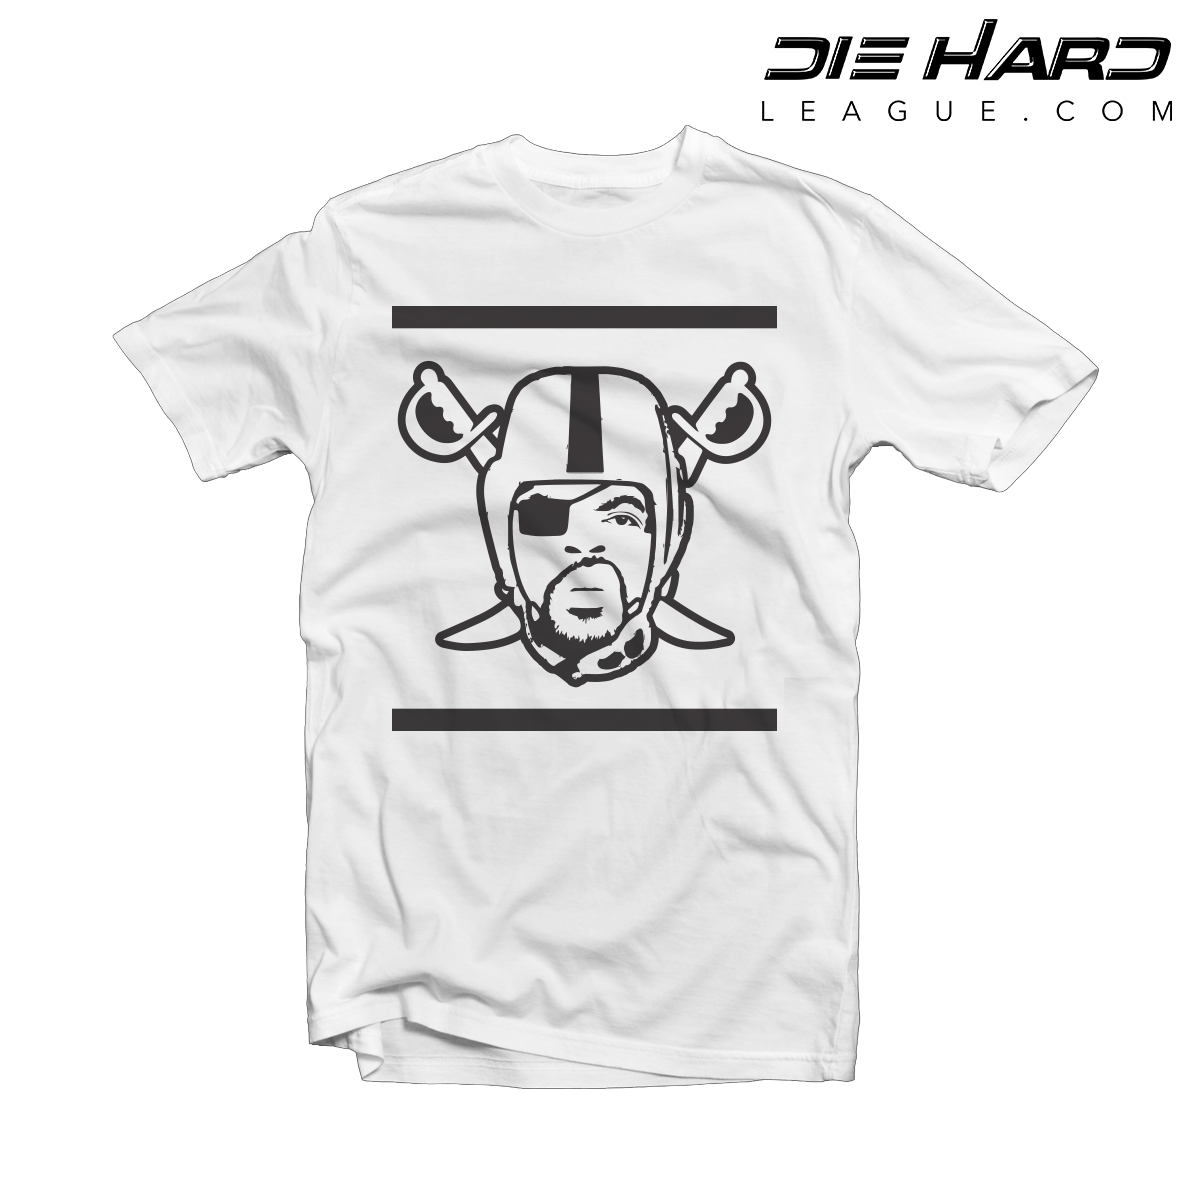 e08b1923ee3 Shop. Home Oakland Raiders Clothing Raiders Shirts Oakland Raiders T Shirt  ...